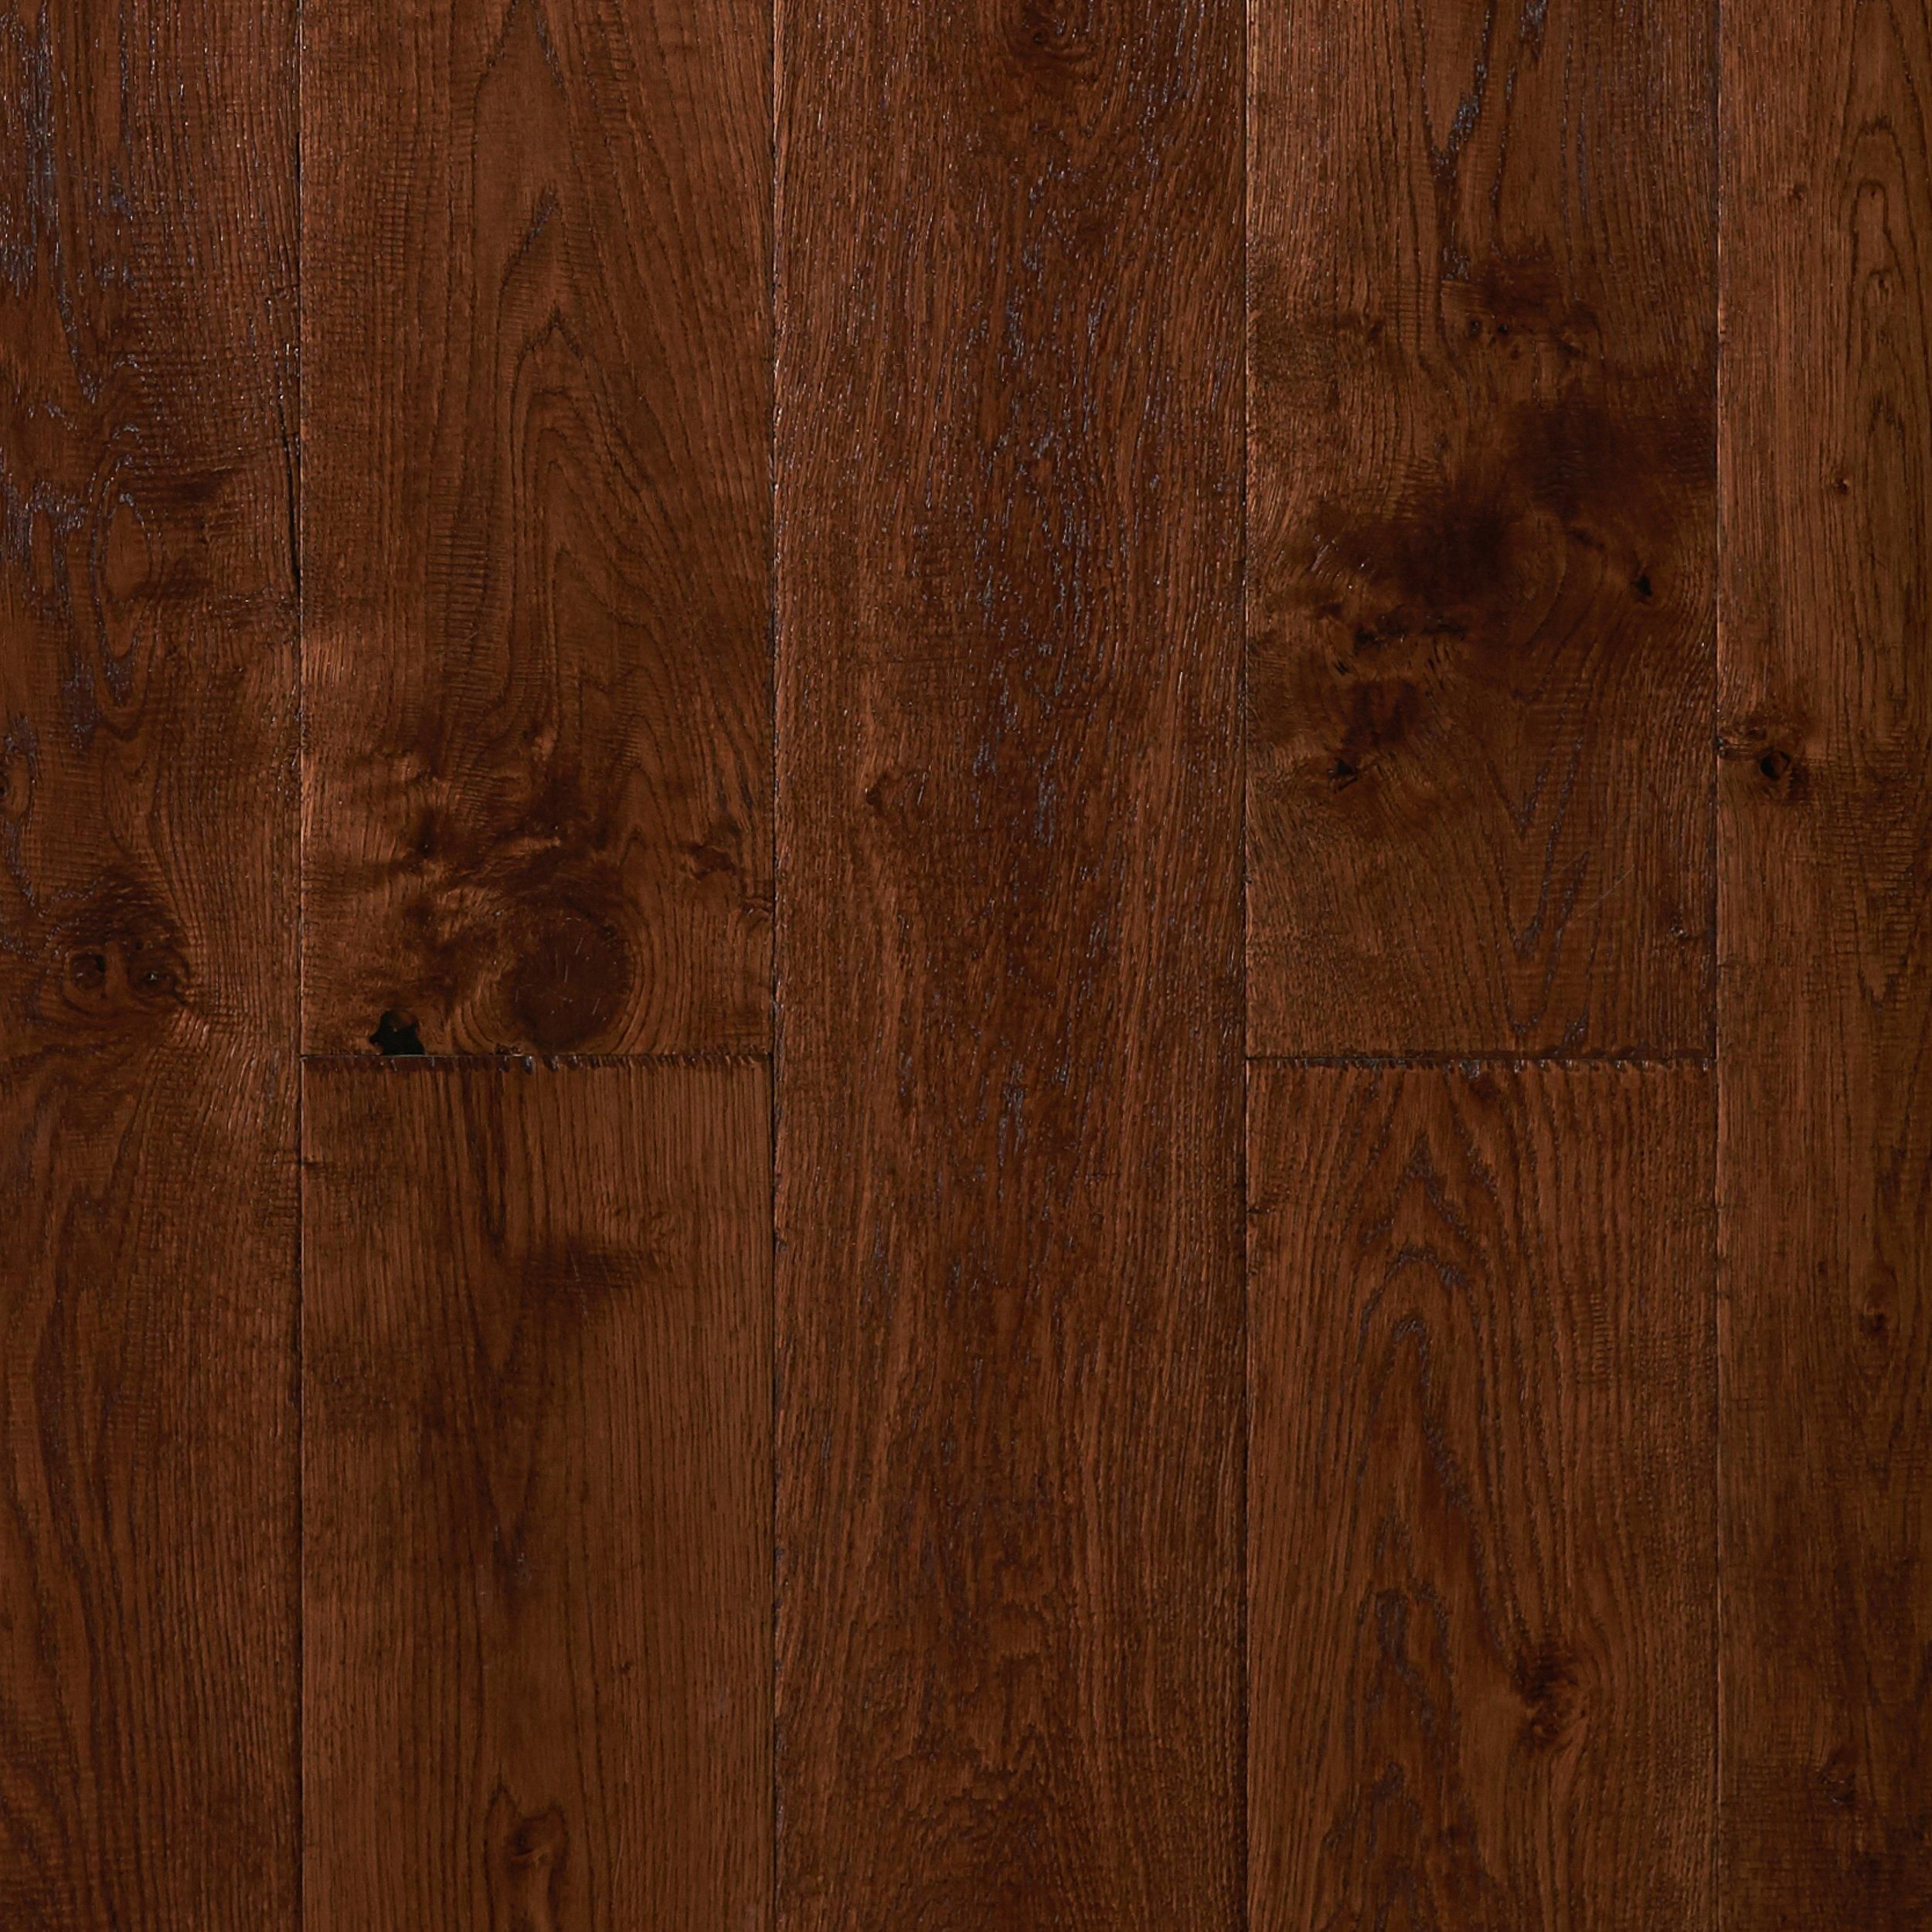 Lifescapes Amalfi Oak Hand Scraped Engineered Hardwood 1 2 Inch X 7 1 2 Inch Brown Floor Decor In 2020 Types Of Wood Flooring Engineered Hardwood Installing Hardwood Floors